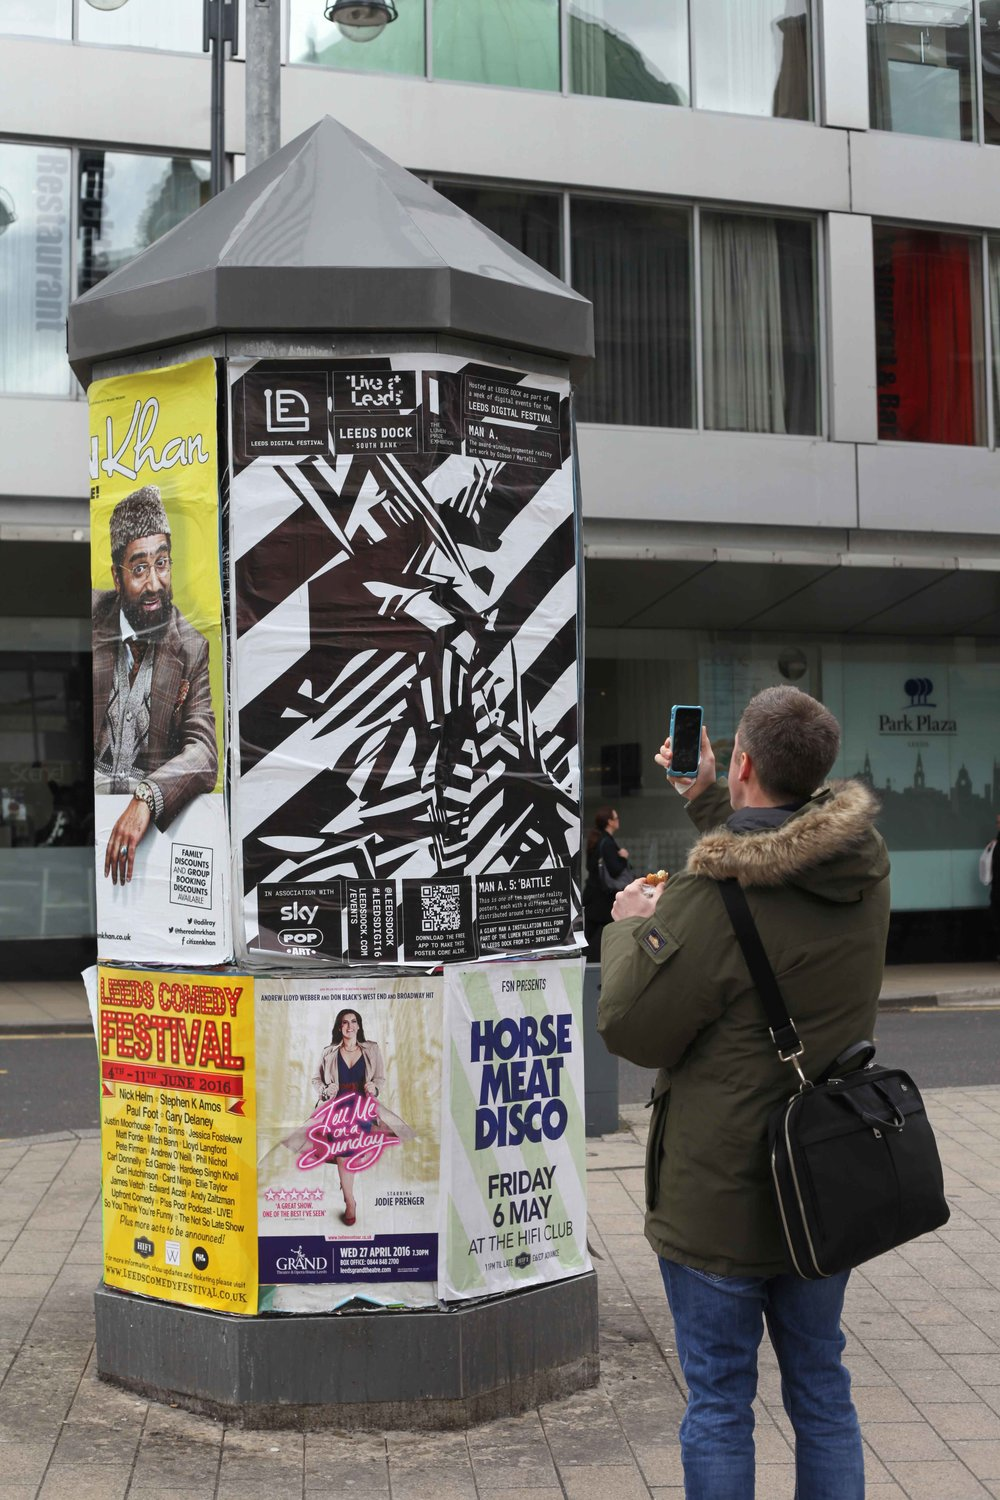 'MAN A'  Augmented reality artwork by Gibson / Martelli. We devised a city wide marketing campaign for the Leeds Digital Festival (incorporating the Lumen Prize exhibition) utilising 15 unique variations of the 'MAN A' artwork.